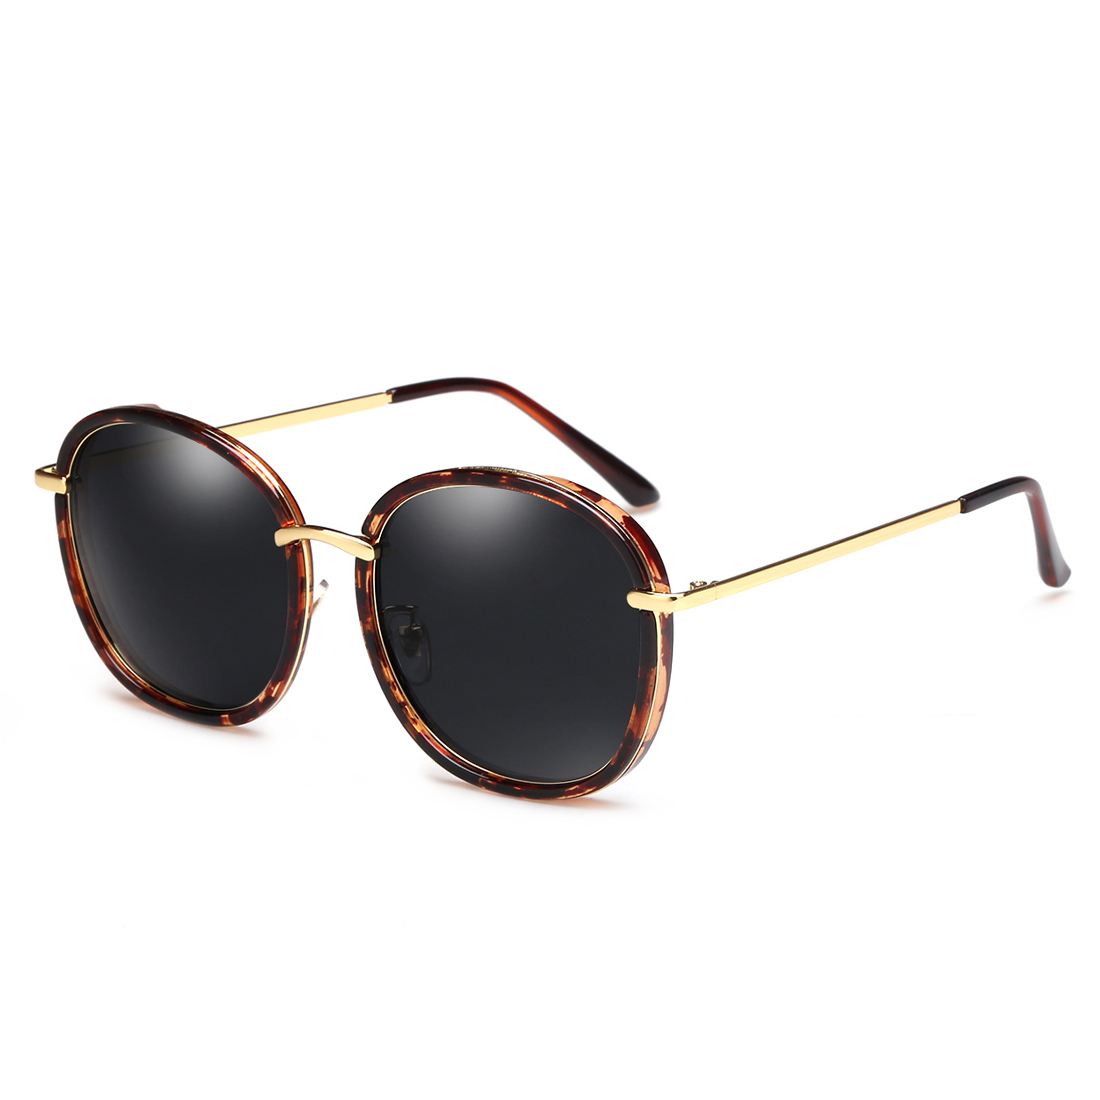 Kính nữ Oversize Sunglasses Mirrored Awesa